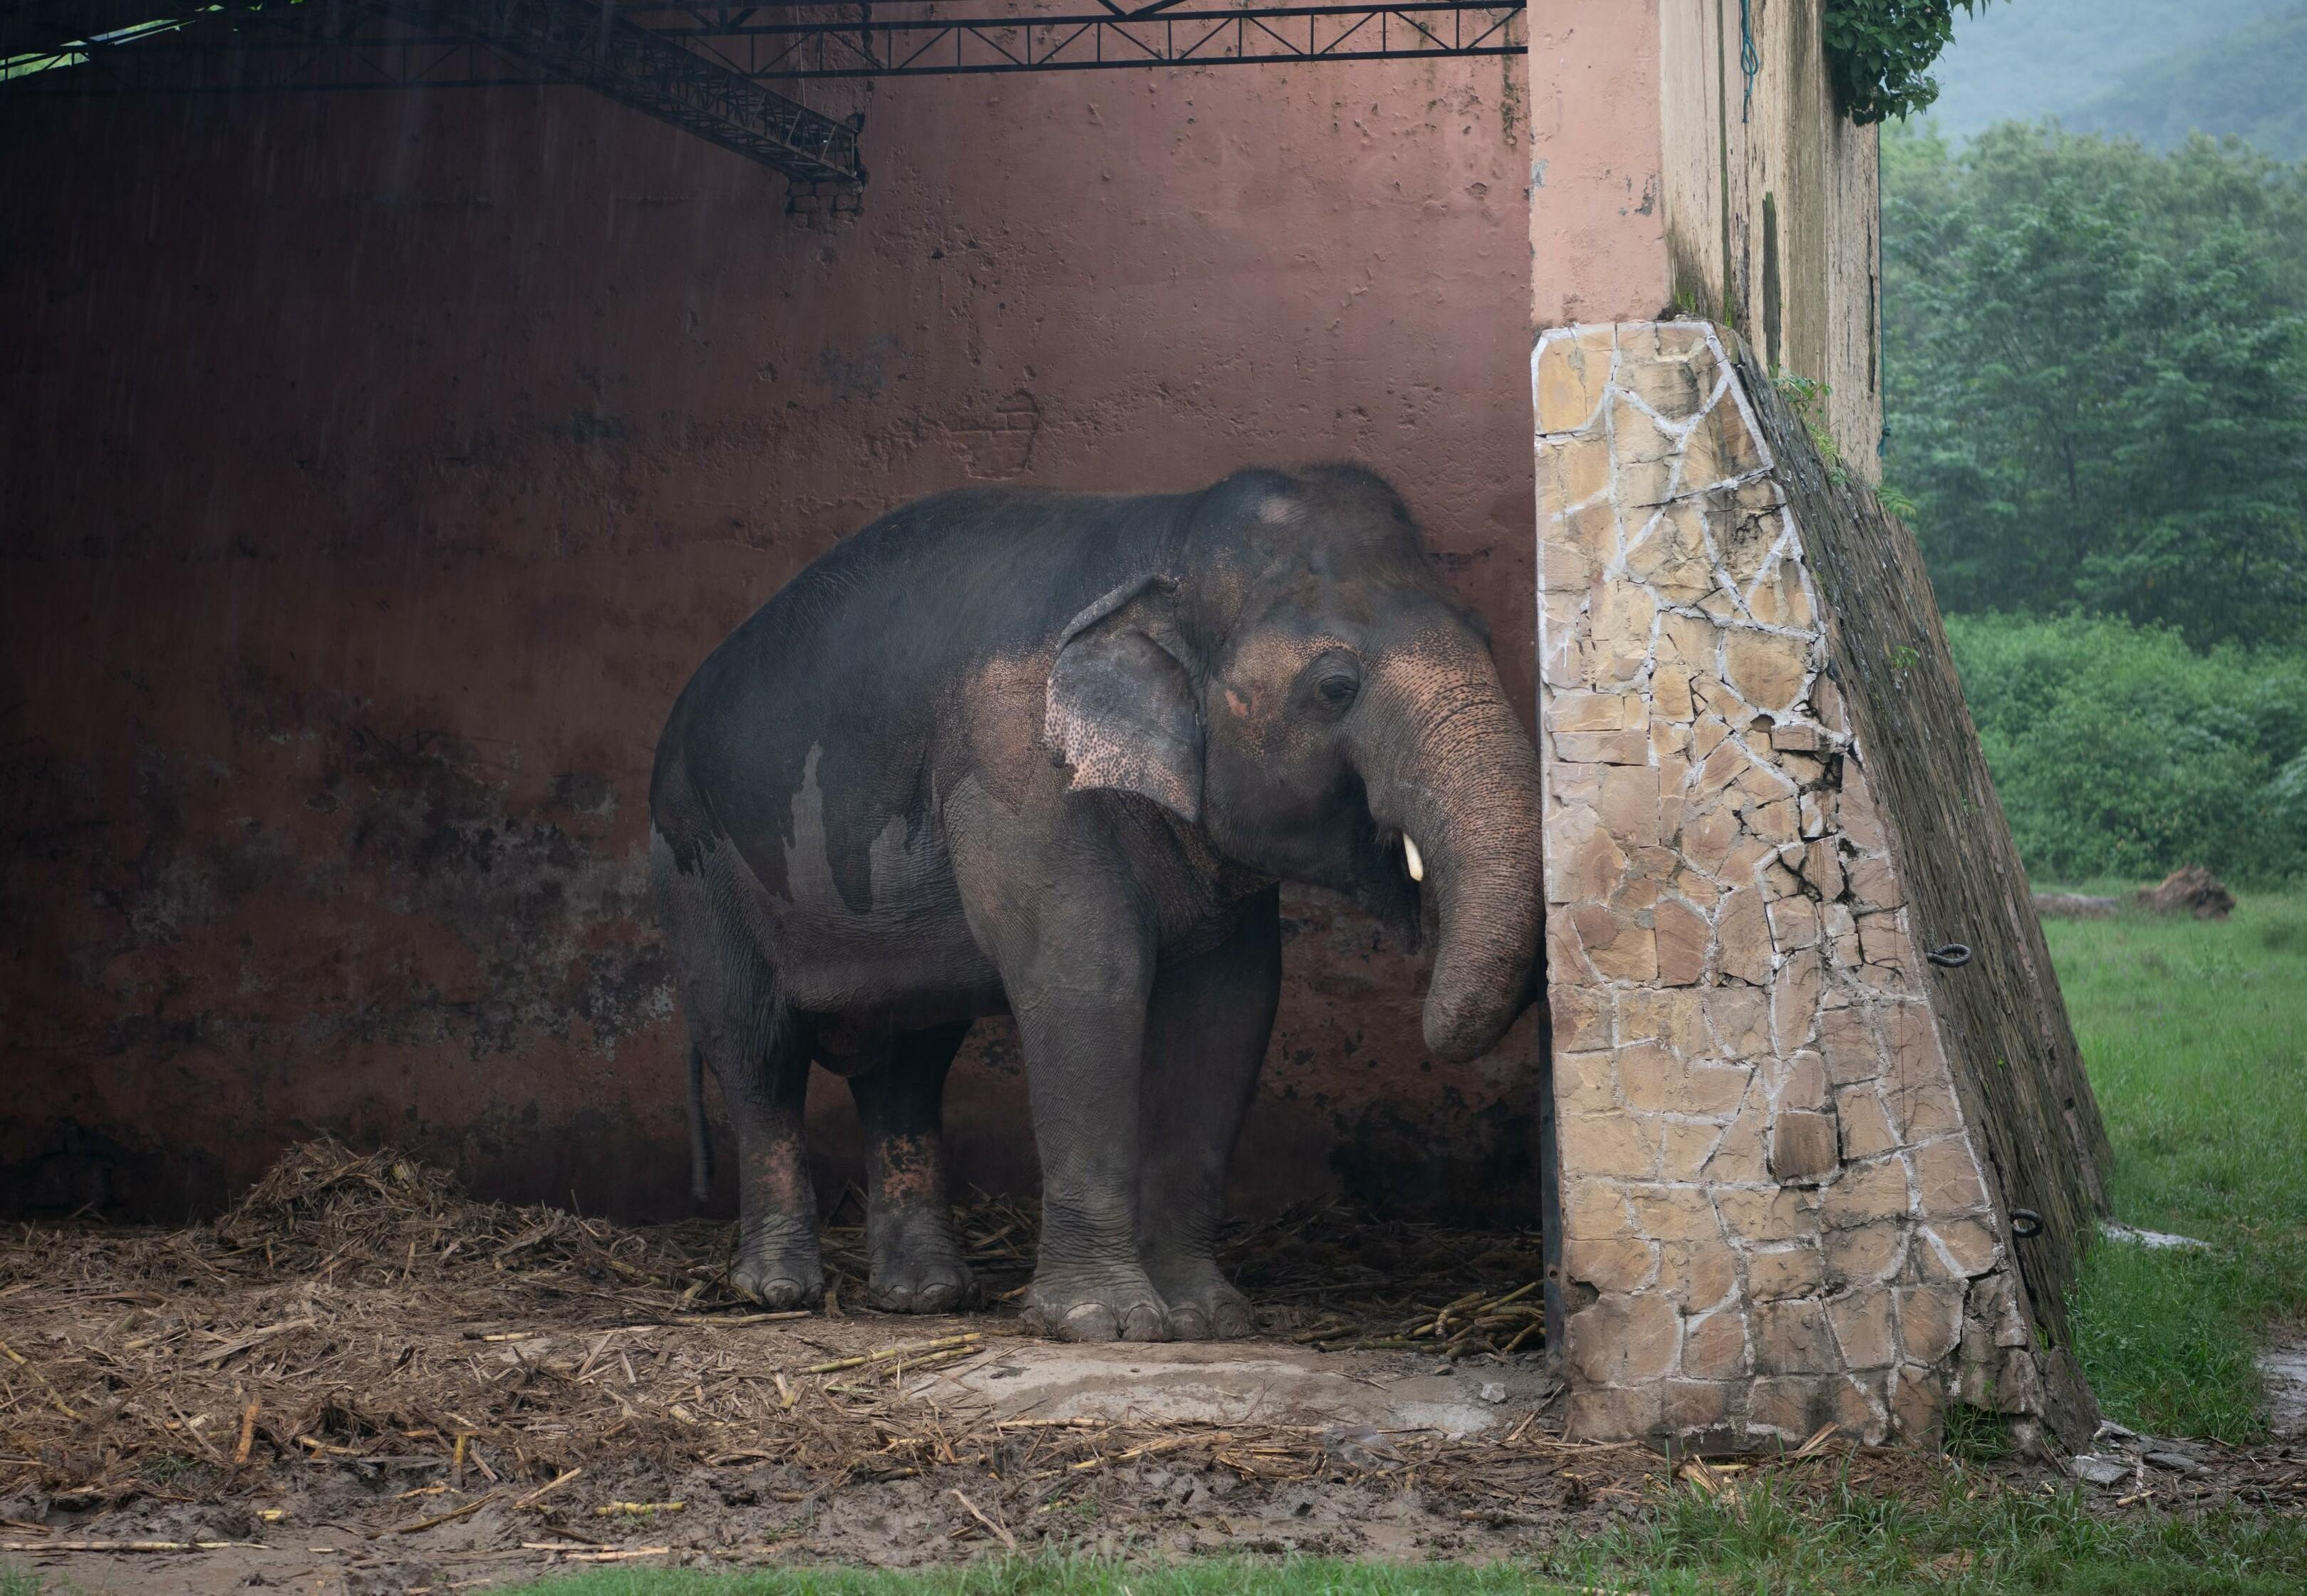 Elephant Kaavan will soon leave Pakistan